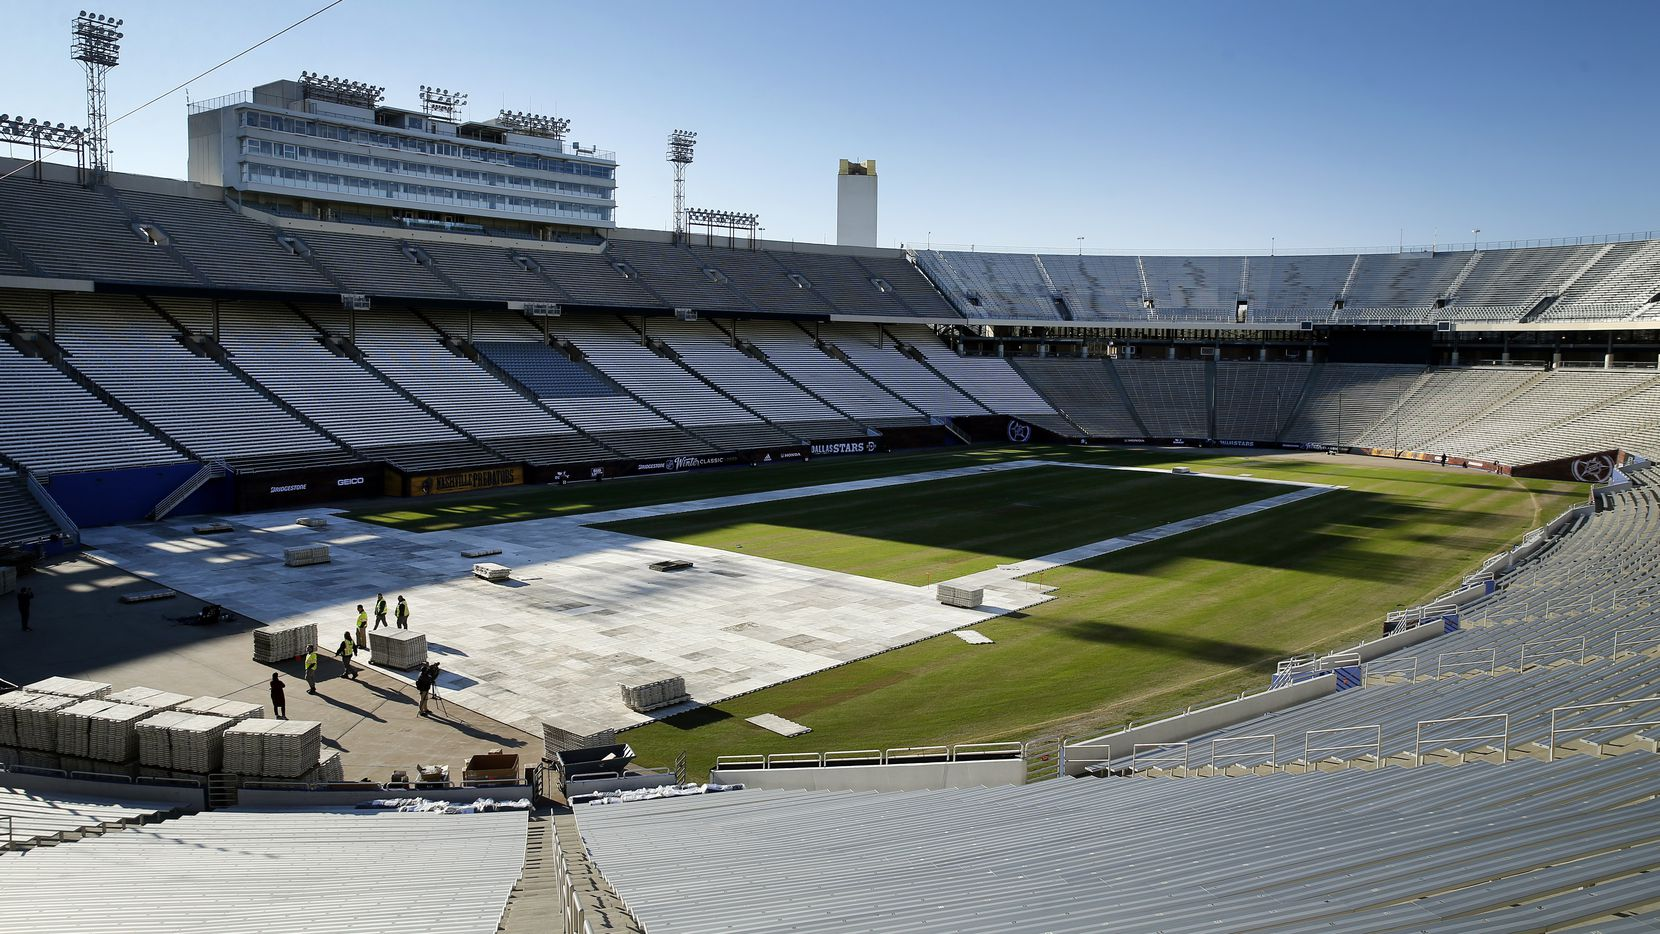 The plastic decking is going down on the Cotton Bowl field in preparation for the New Year's Day Winter Classic hockey game at Fair Park in Dallas, Tuesday, December 17, 2019. The annual game will pit the Dallas Stars against the Nashville Predators. (Tom Fox/The Dallas Morning News)